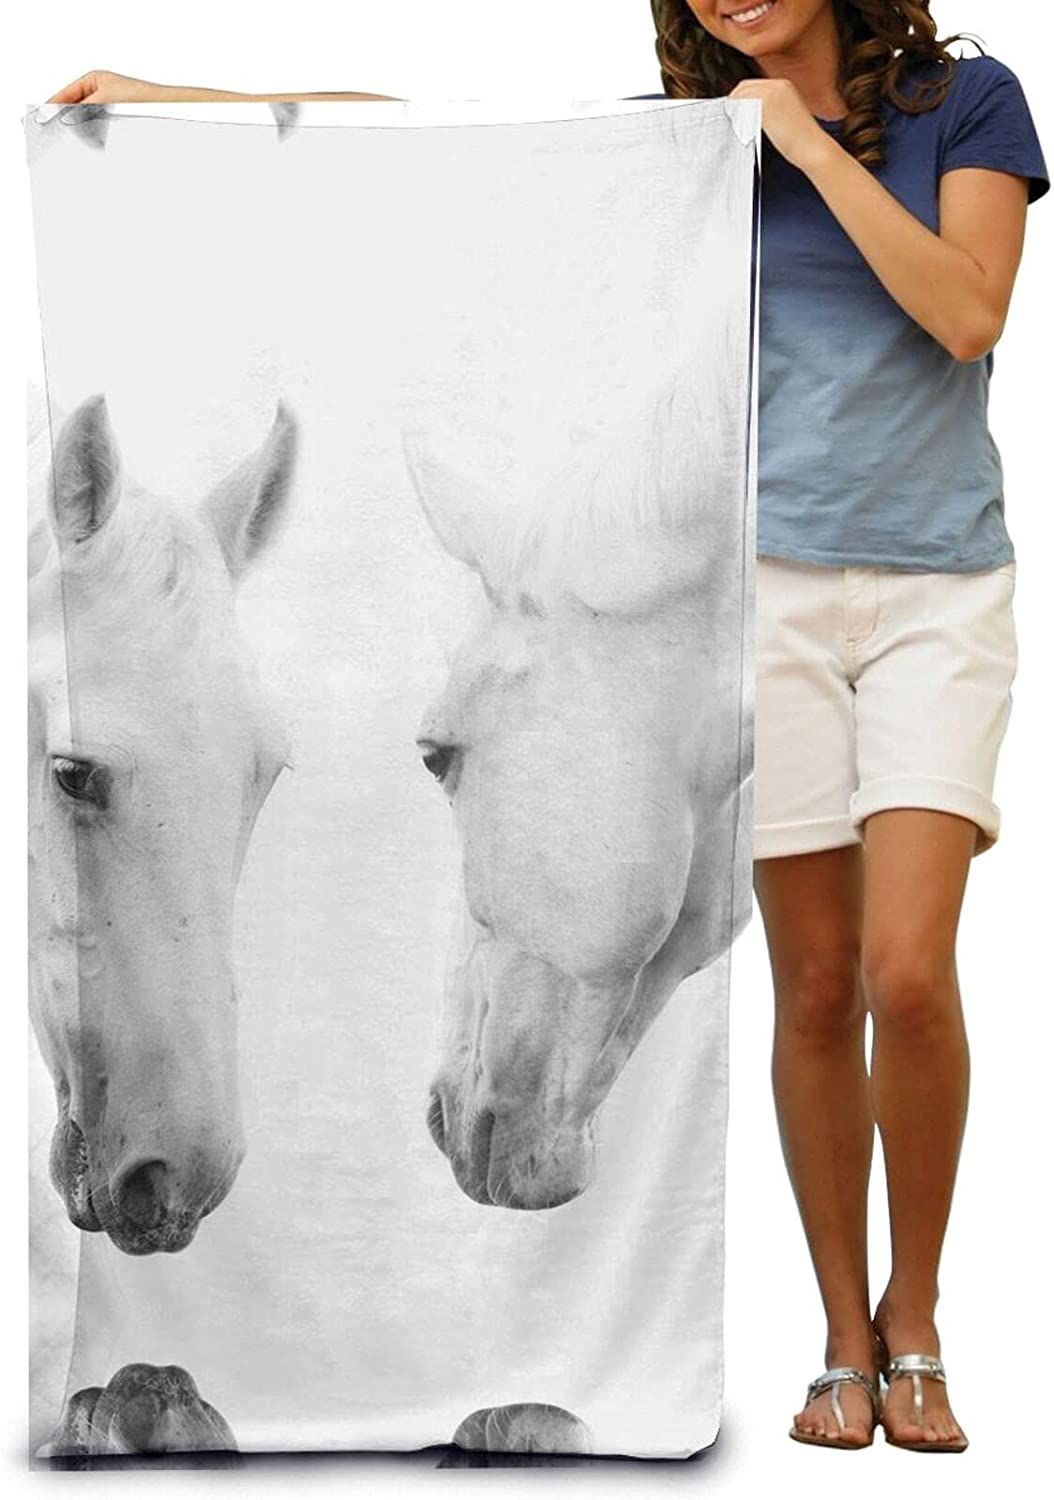 White Horses Print Beach Be super welcome Towels Microfiber Quick and 4 years warranty Soft